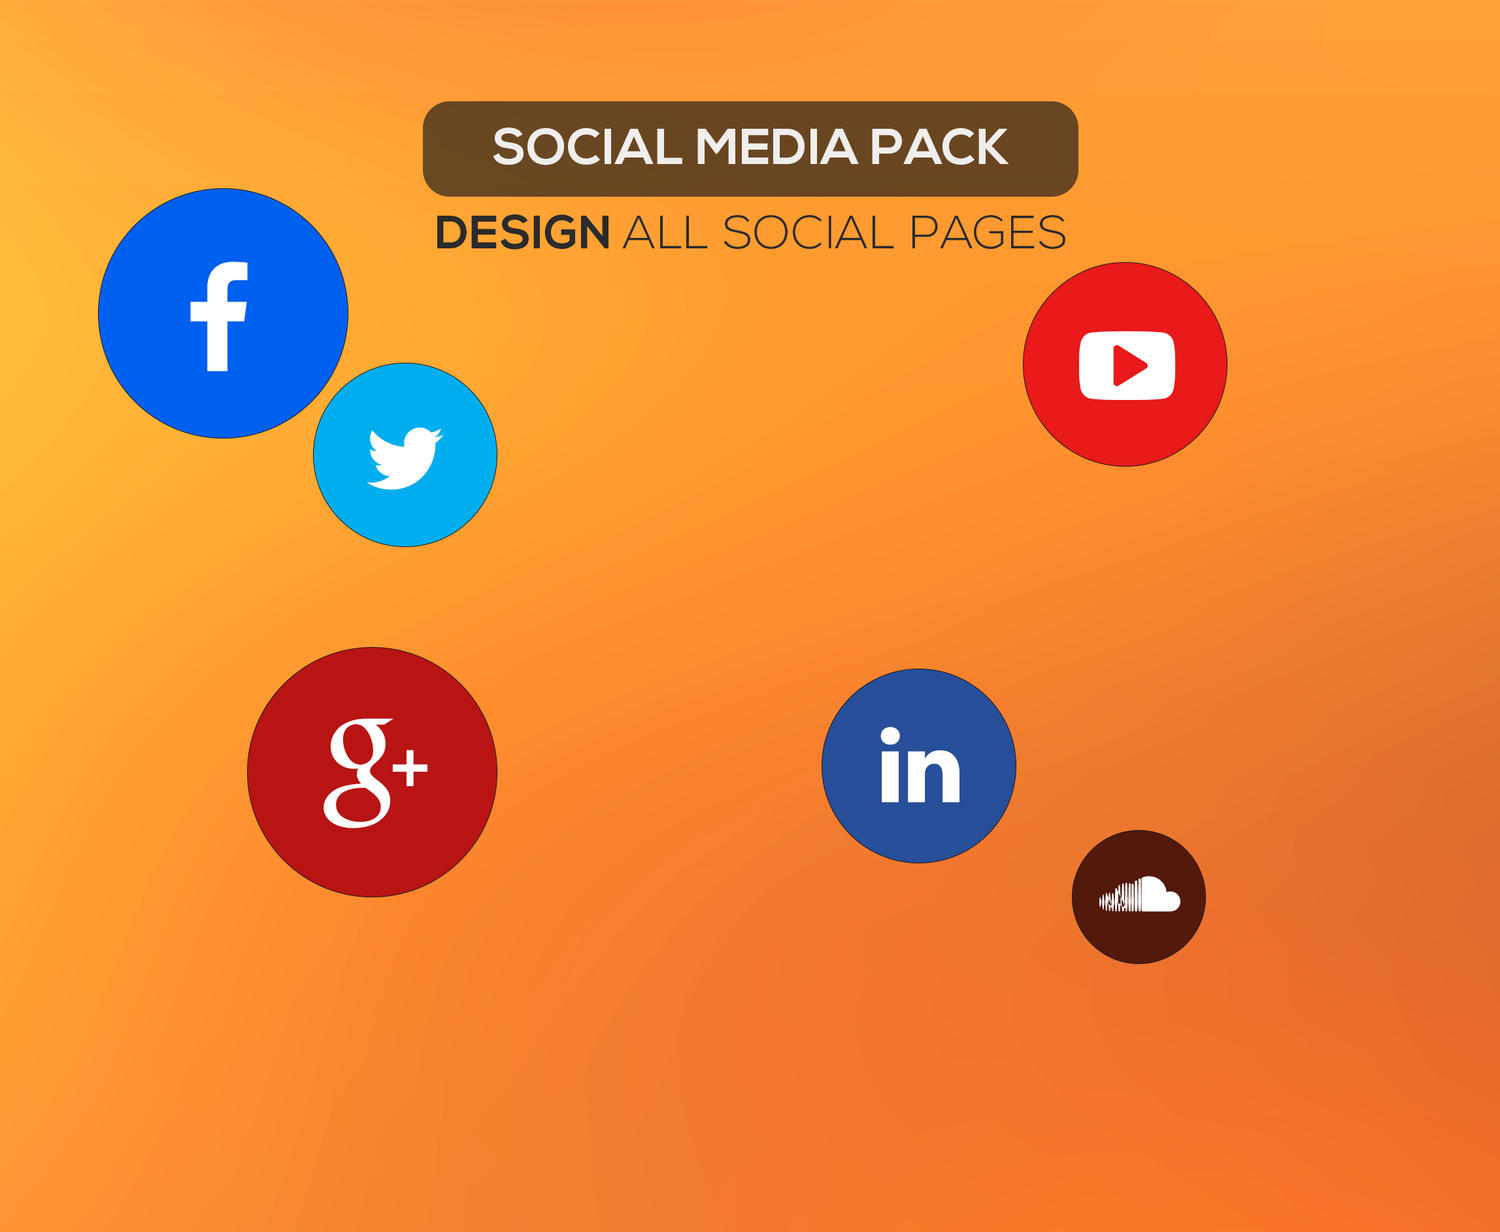 Design Social Media Package by ronitashkodra on Envato Studio